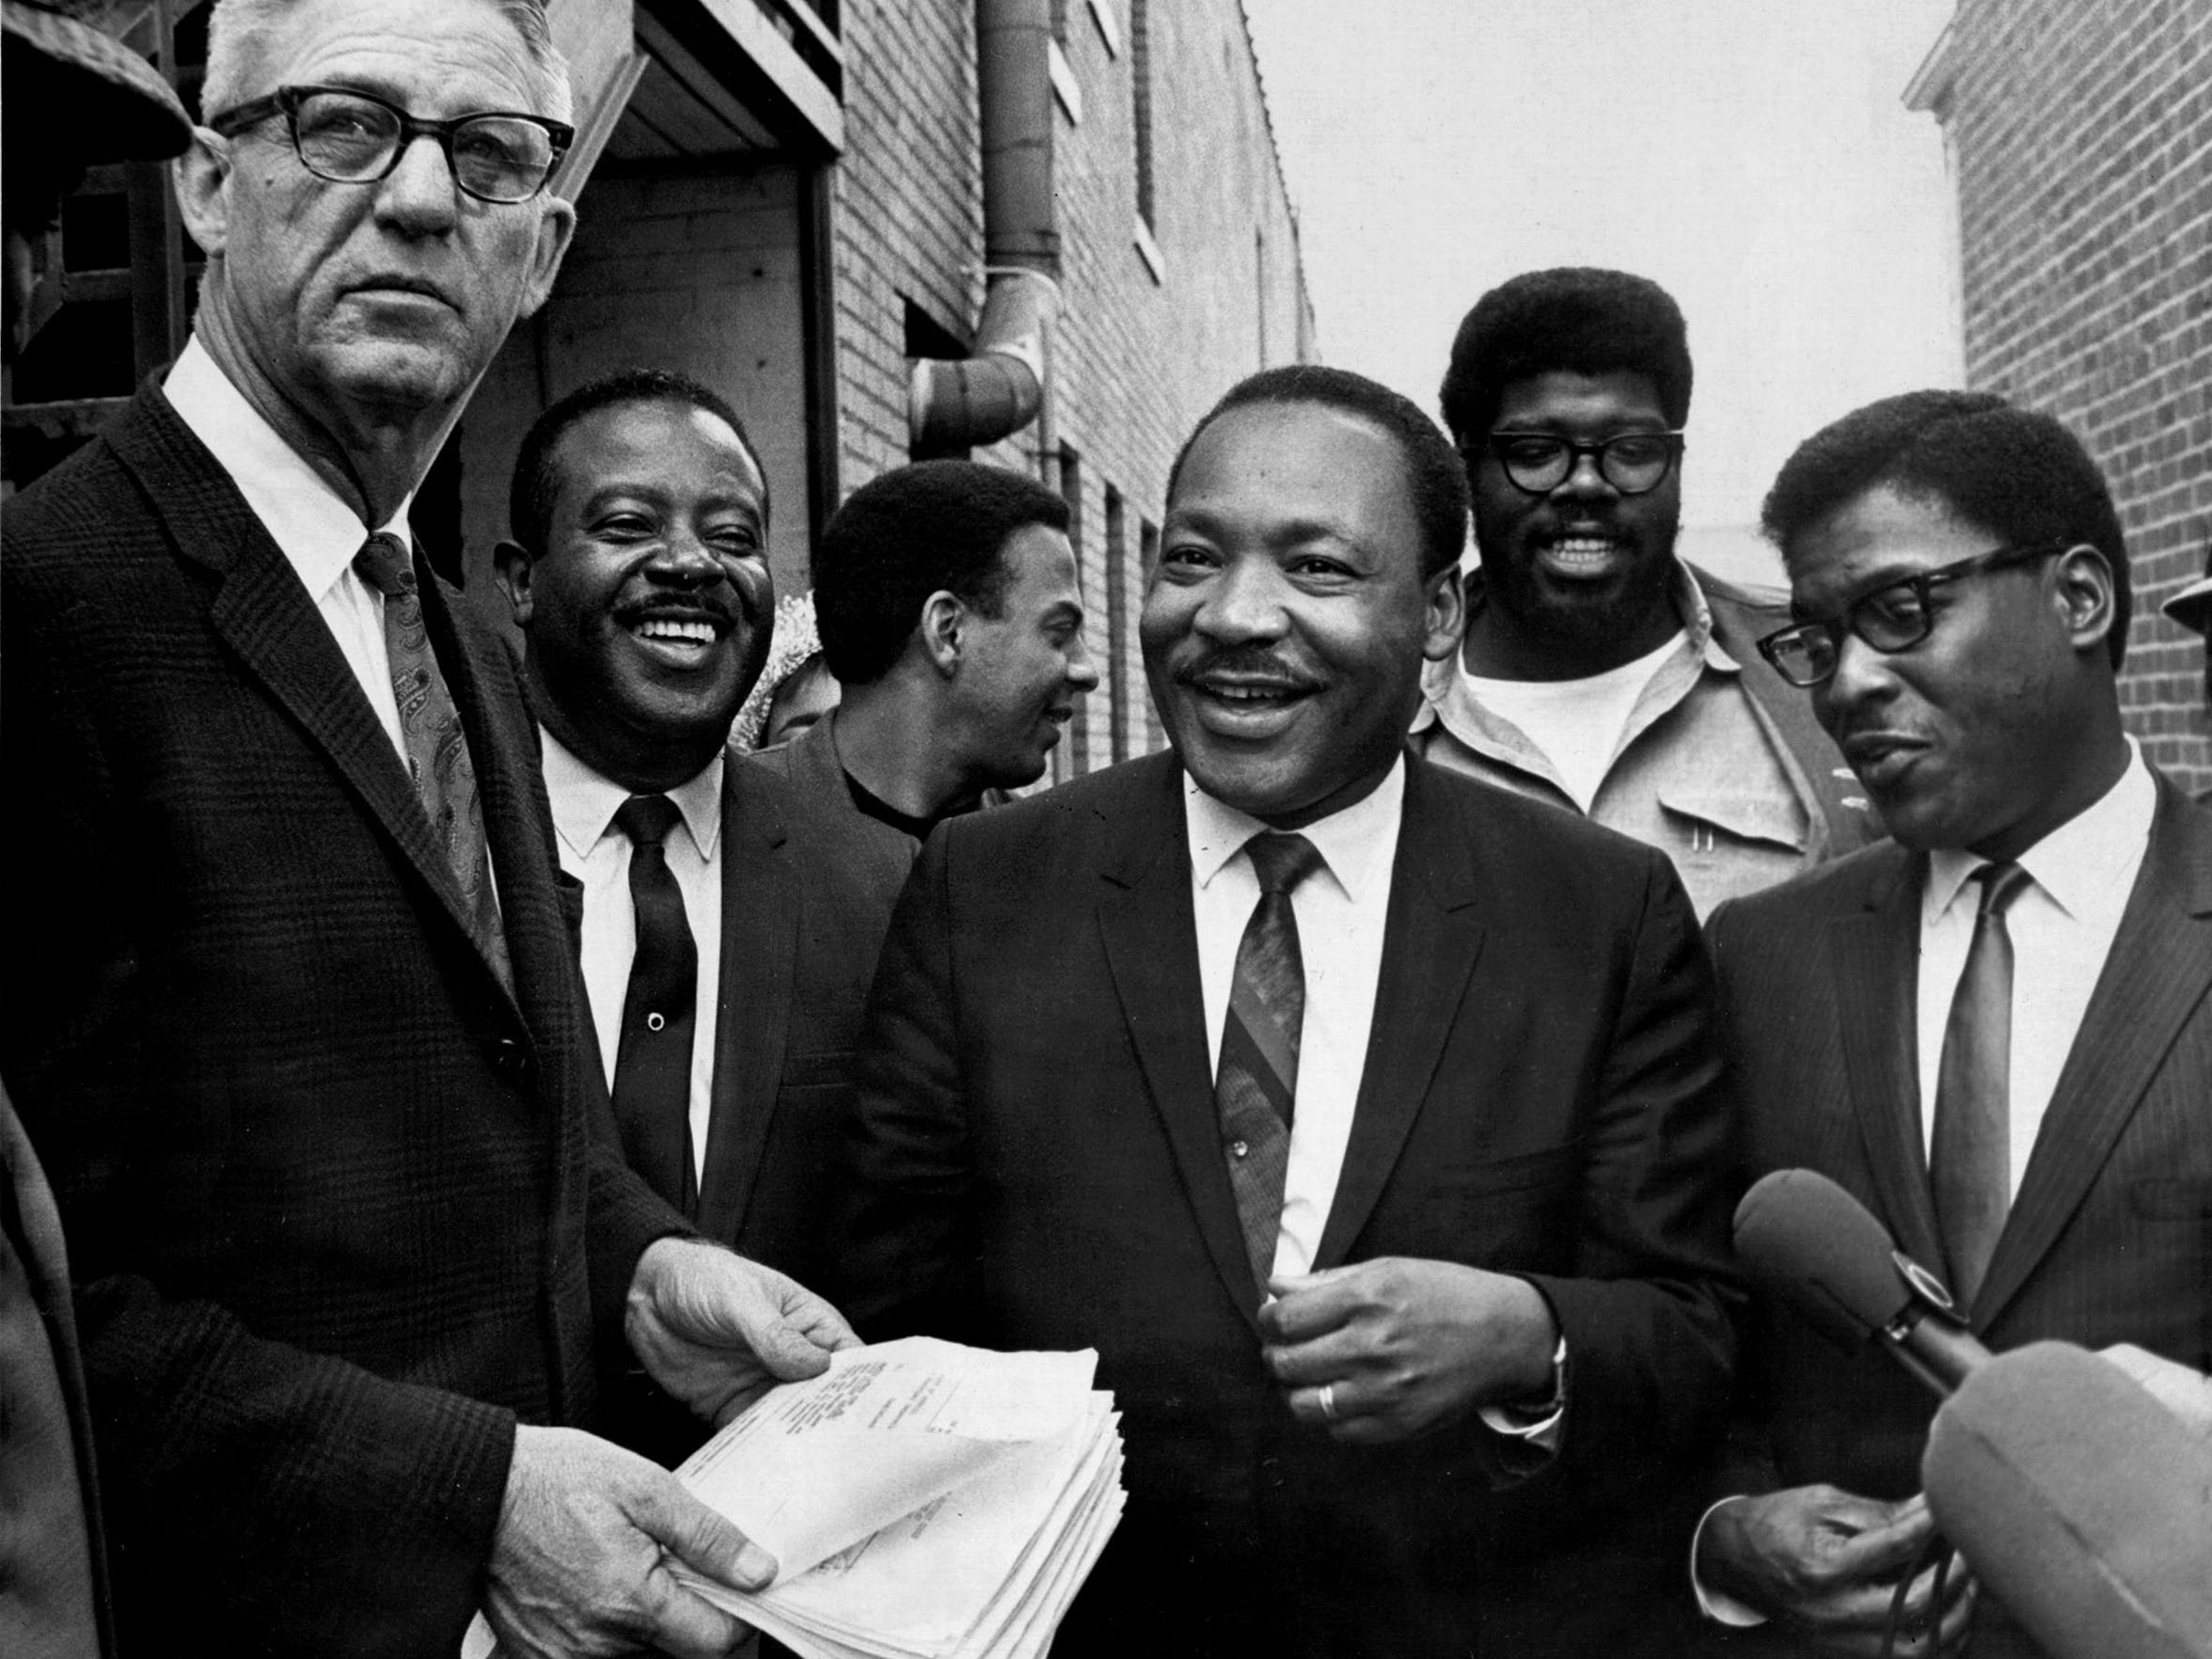 Outside the Lorraine Motel Wednesday, April 3, 1968, U.S. Marshal Cato Ellis served Dr. Martin Luther King Jr. with a temporary restraining order from a federal judge, barring them from leading another march in Memphis without court approval.